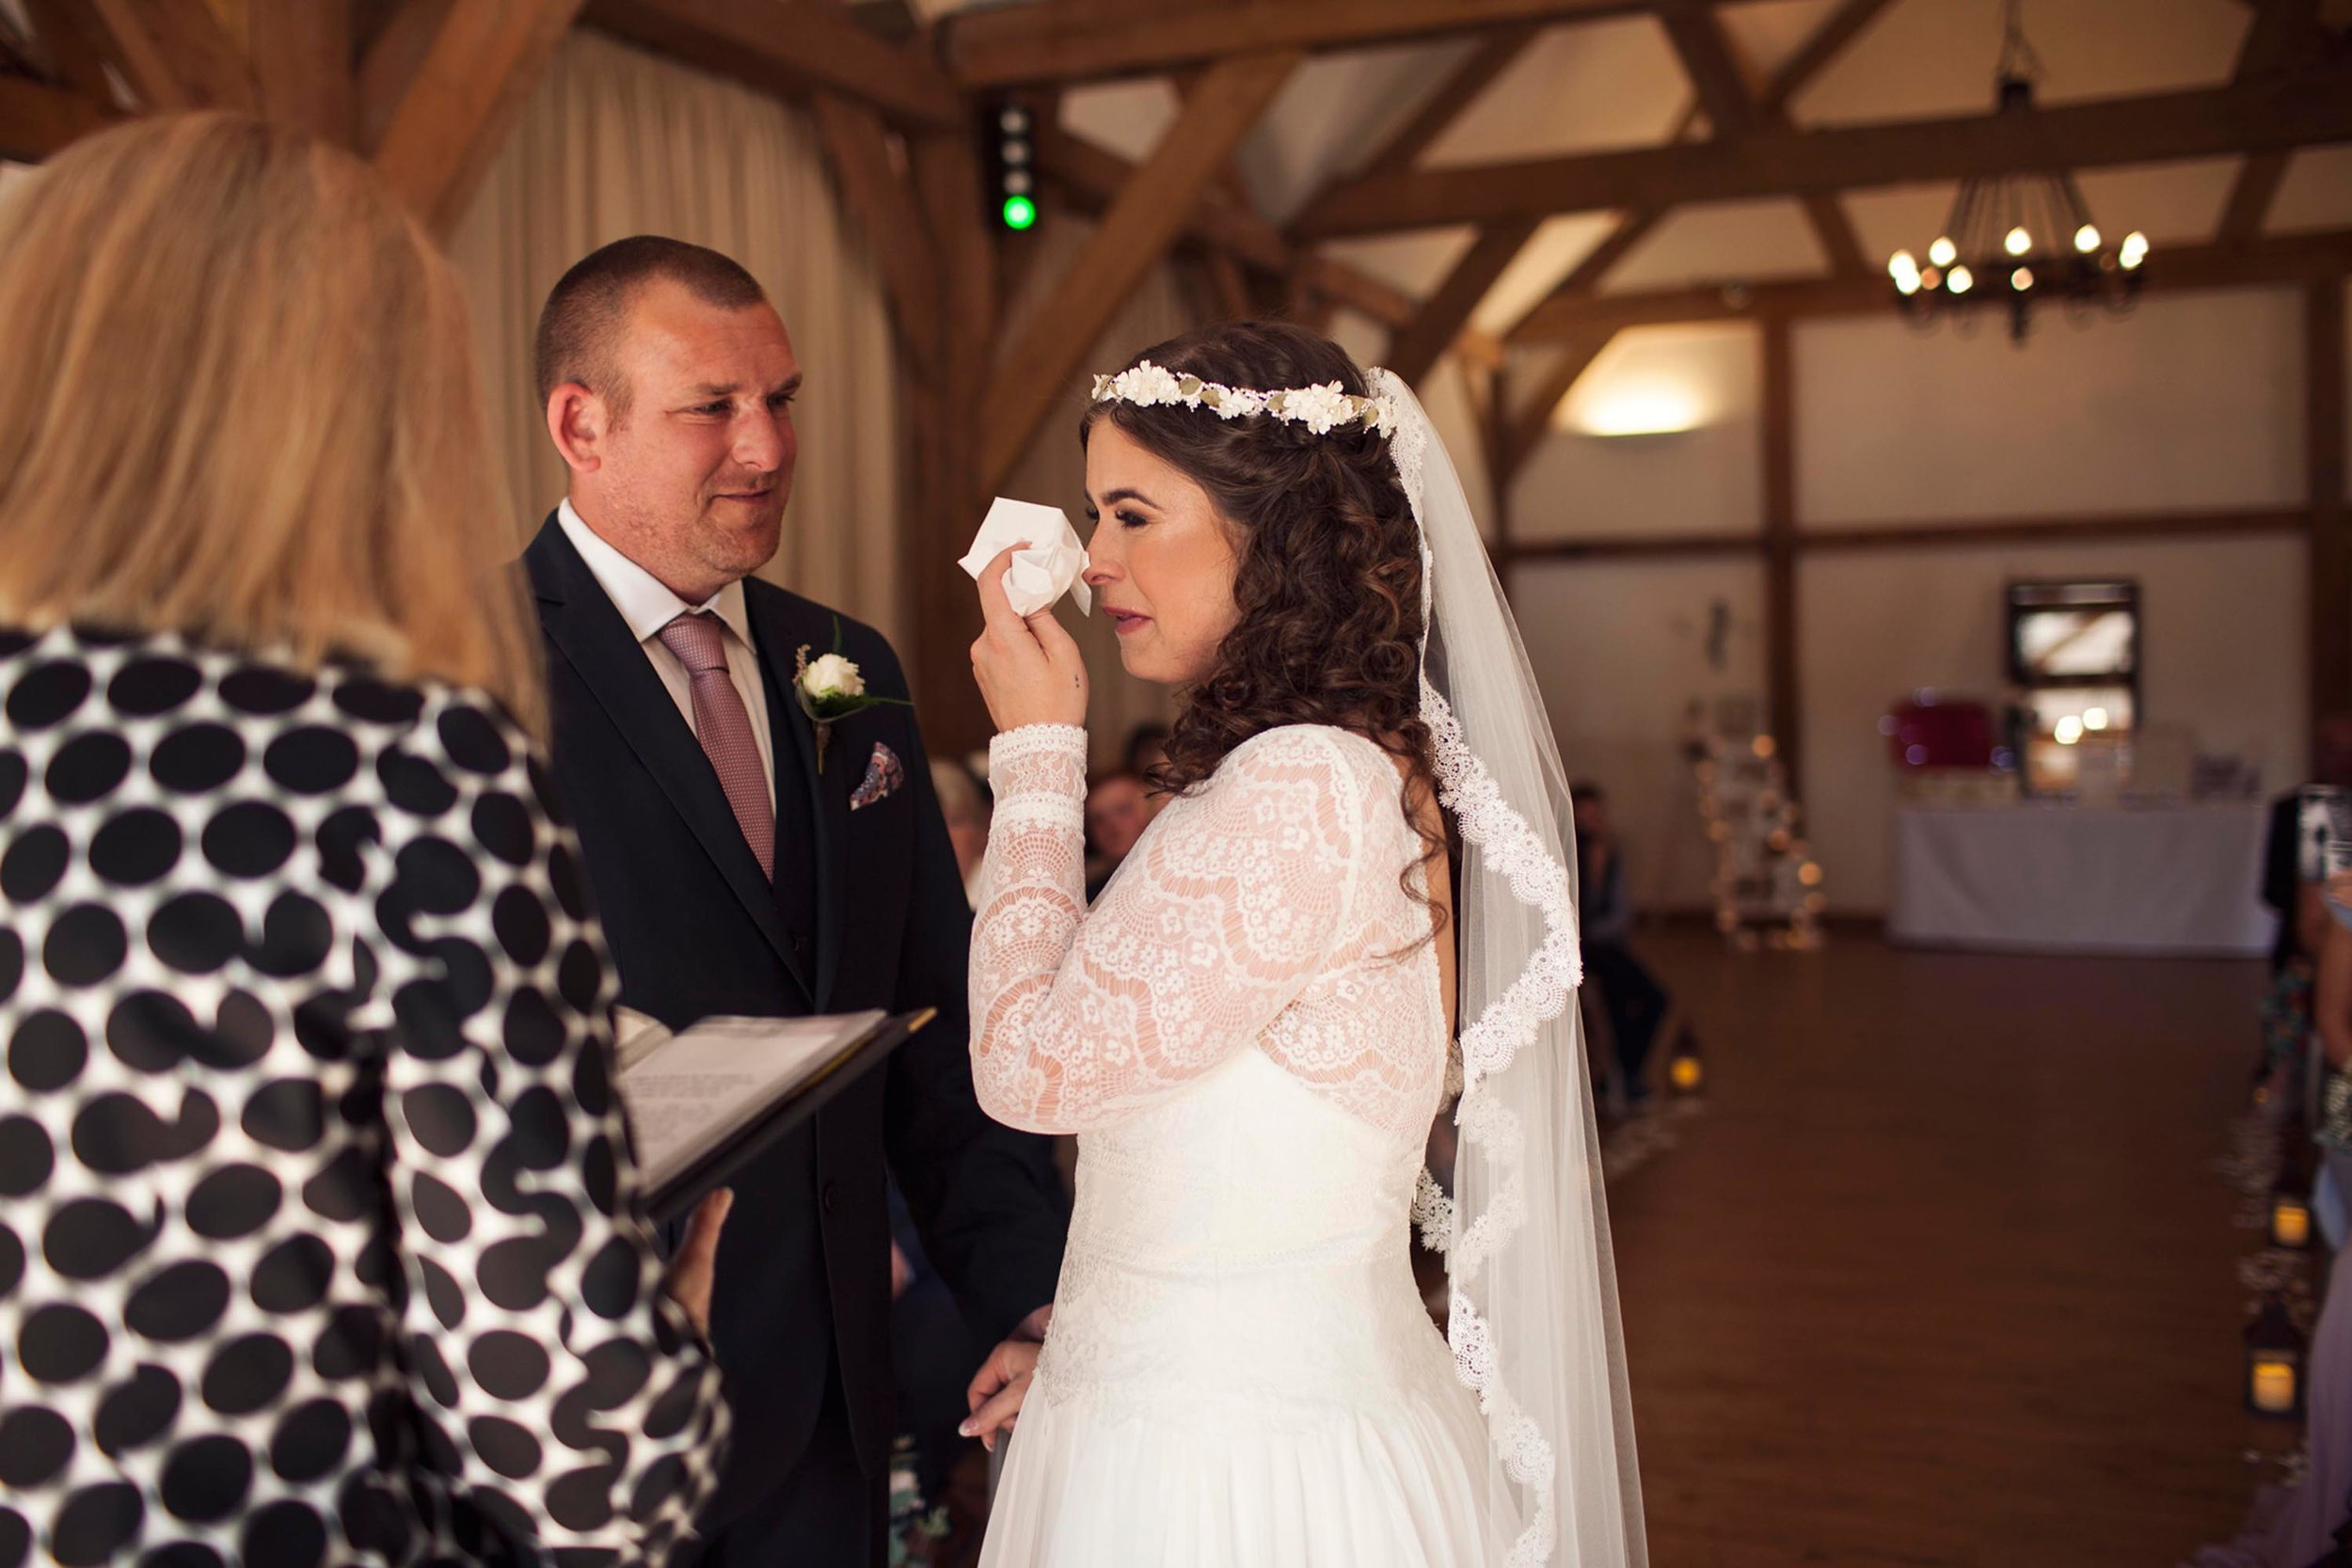 Crying and laughing bride on her wedding day